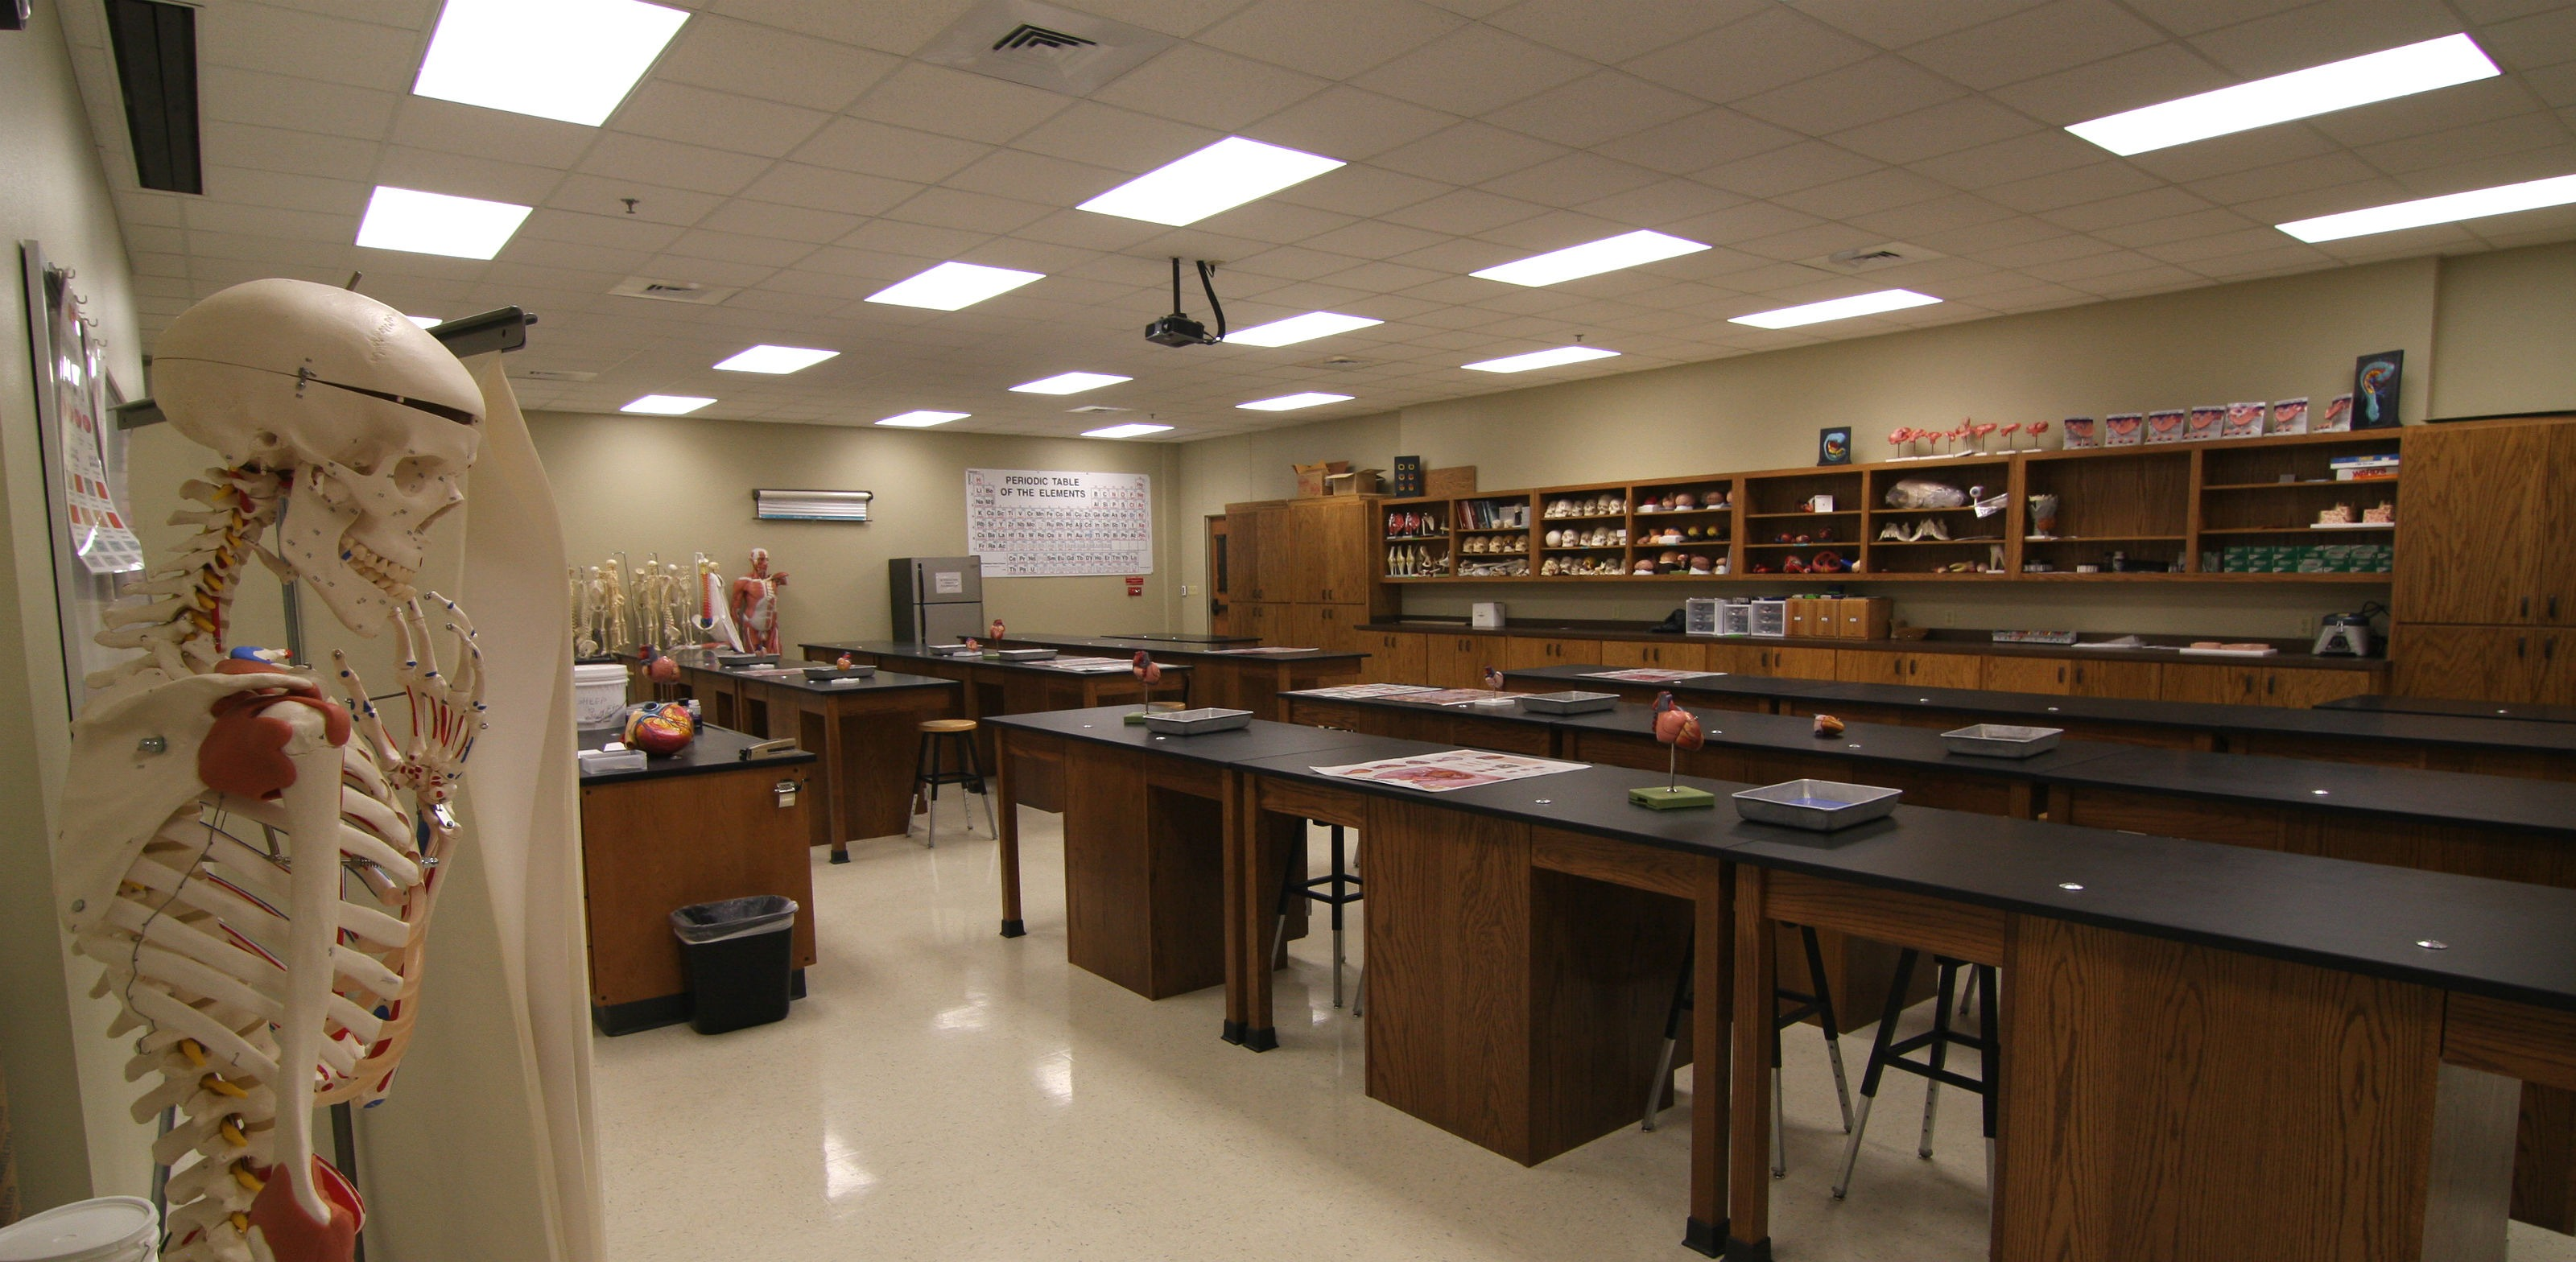 empty Science Education classroom and lab